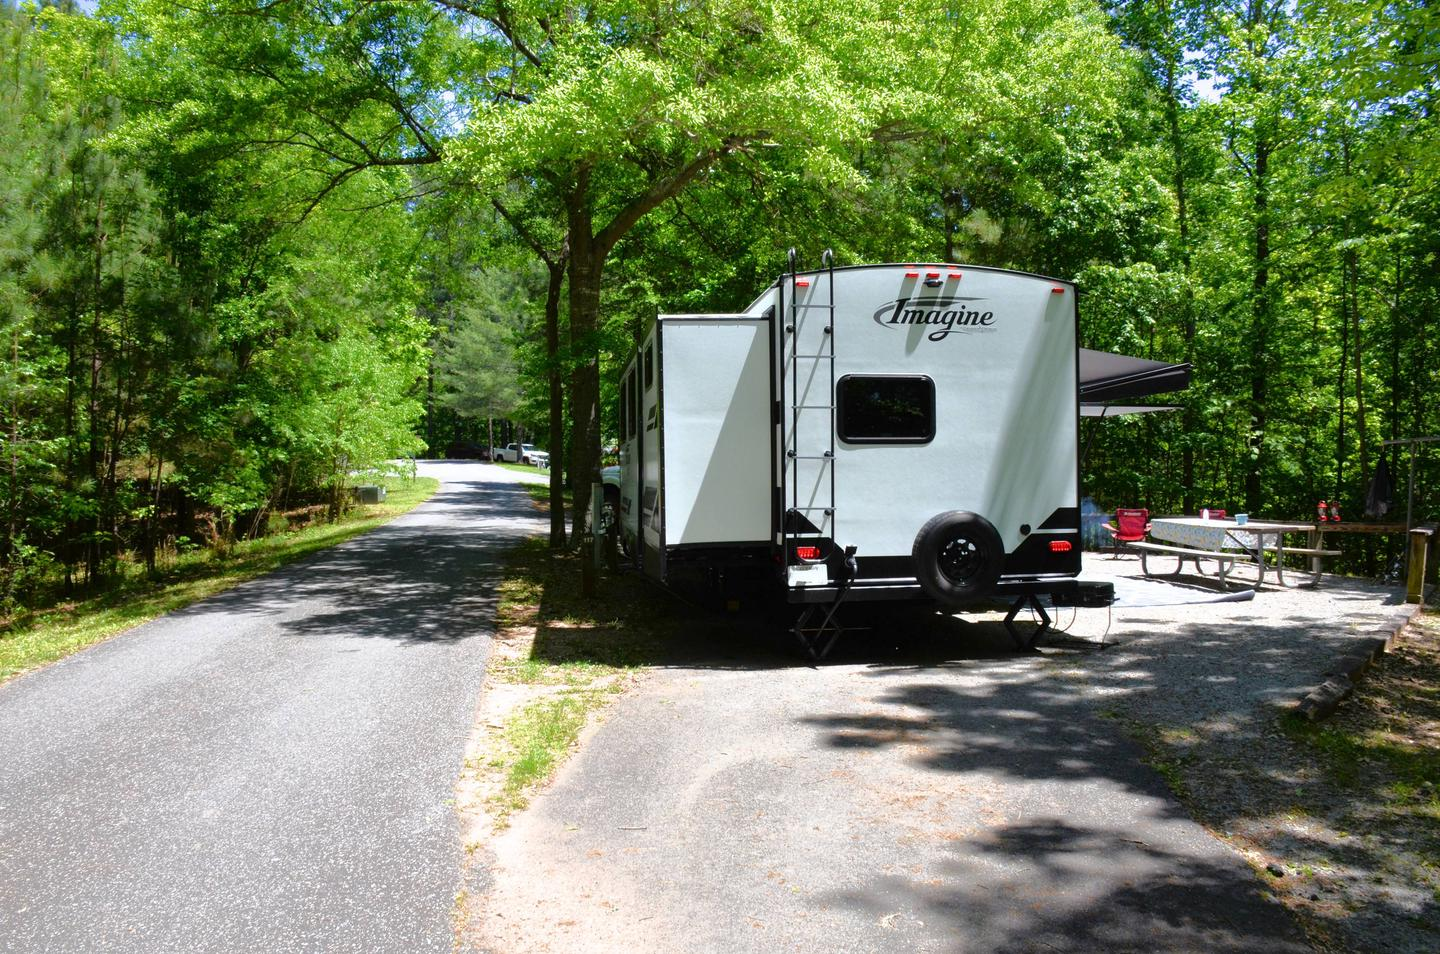 Pull-thru entrance, driveway slope, utilities-side clearance.McKinney Campground, campsite 117.